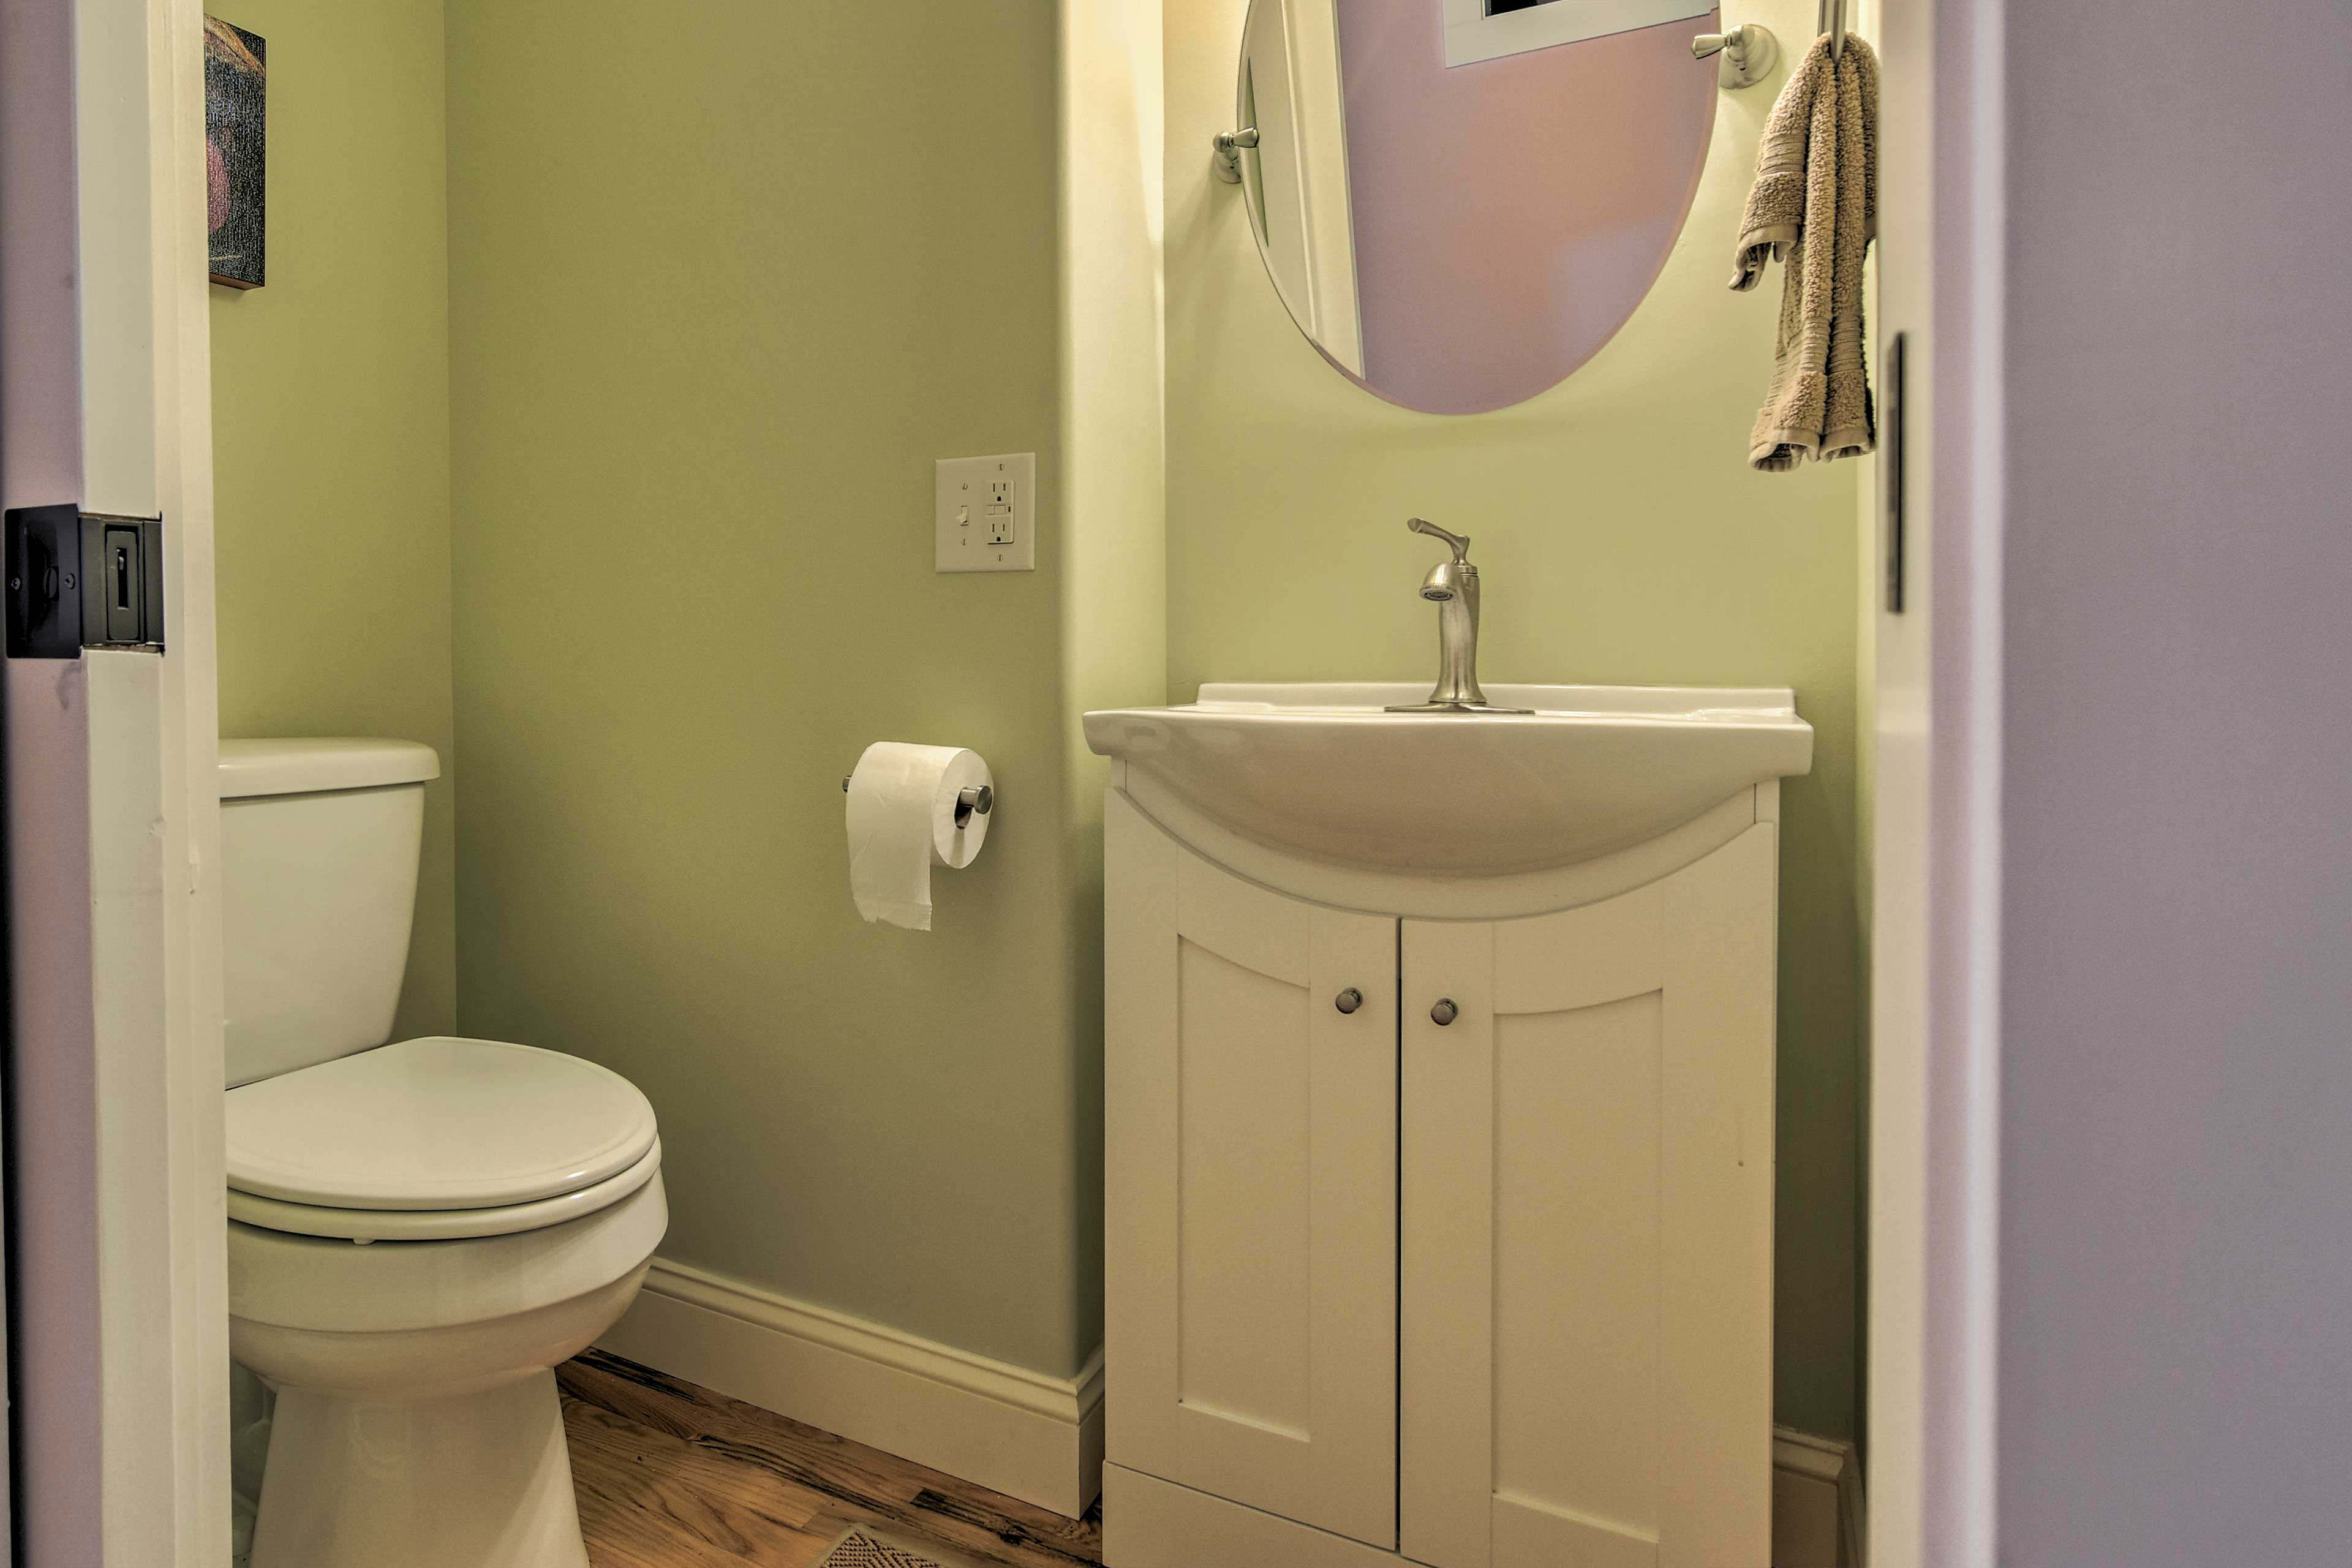 An additional half bathroom is offered on the main floor.